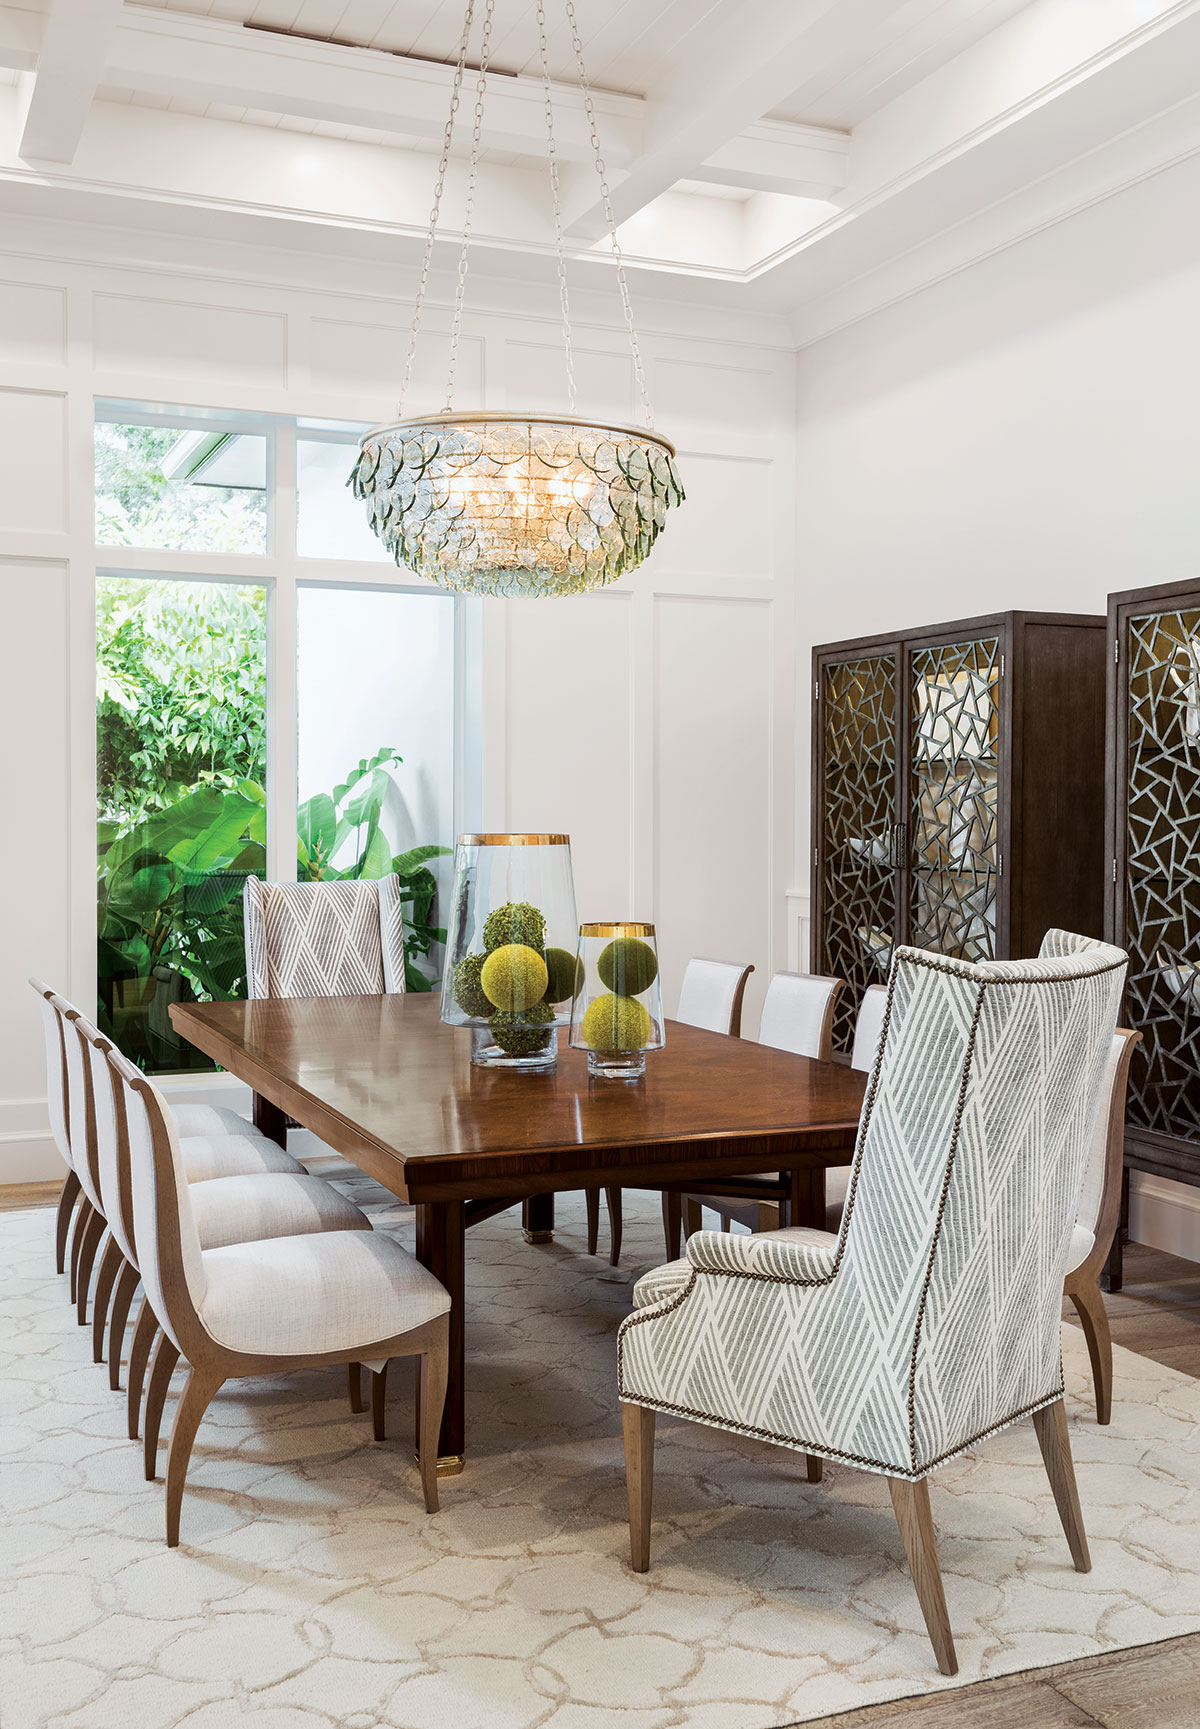 """In the dining room, Hickory Chair's high-back host chairs with nail head trim and side chairs upholstered in crème linen bring formality into the space. """"Many of our clients spend four to six months in Naples, and appreciate having a beautiful space to entertain while enjoying this peaceful lifestyle,"""" design director Debra Lysy says."""